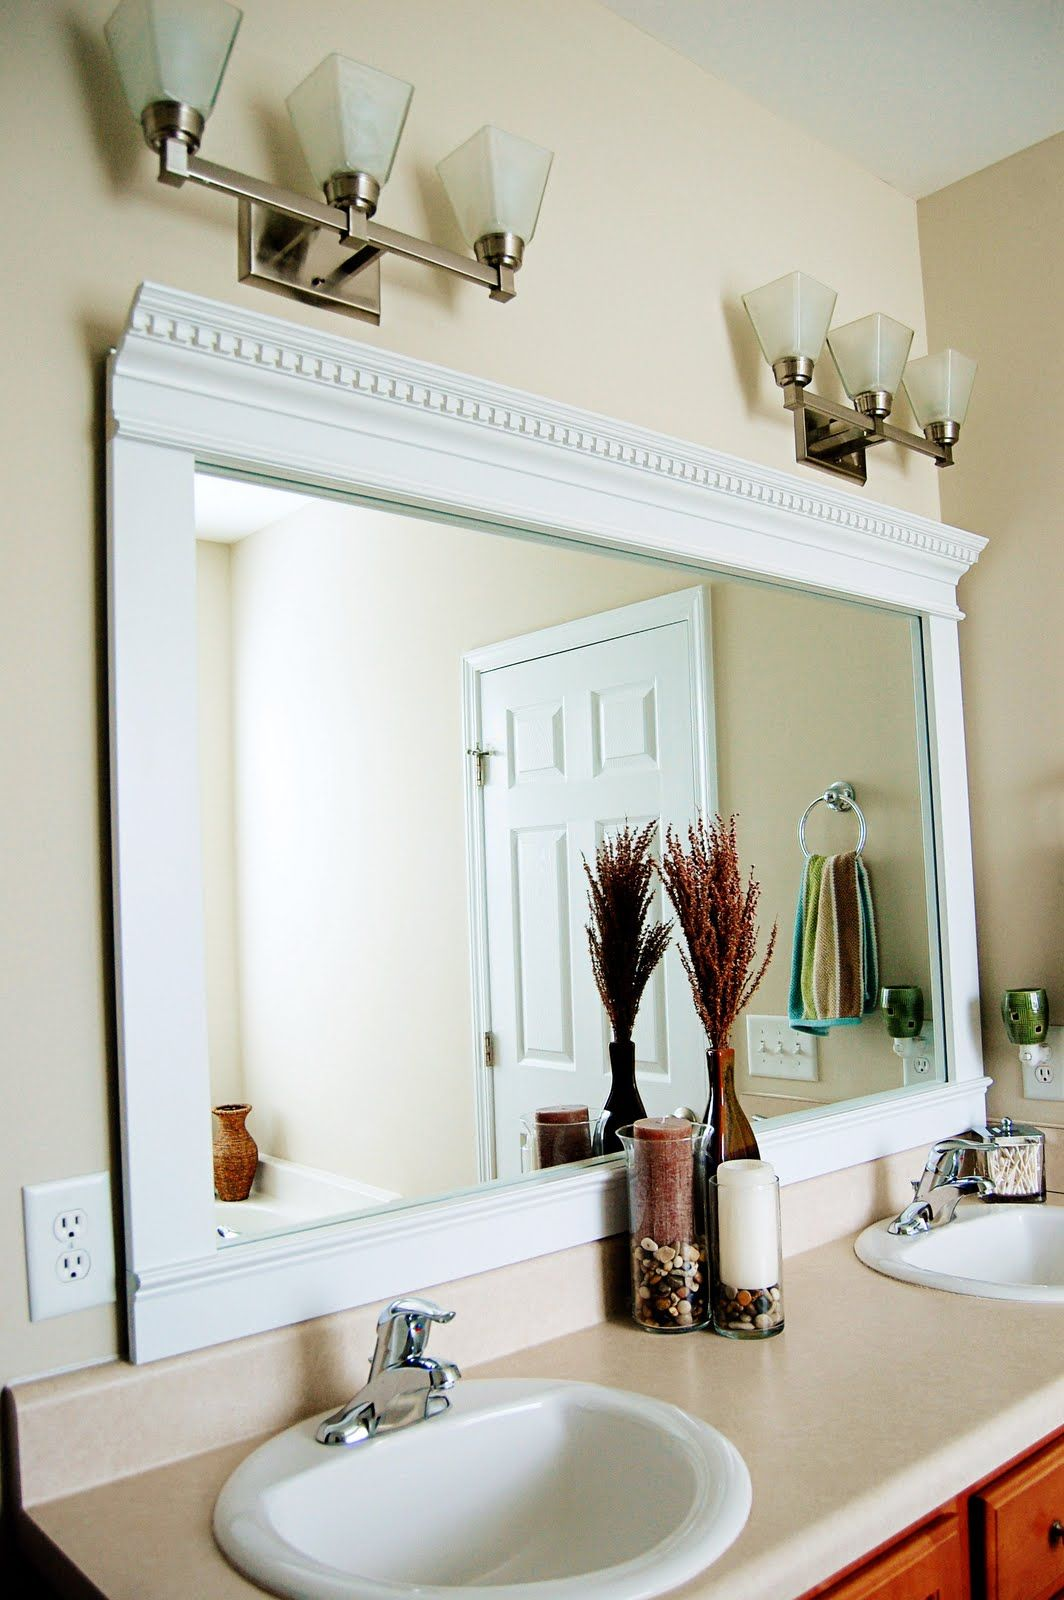 How to make Frame Bathroom Mirror ... from MDF board and Trim ...